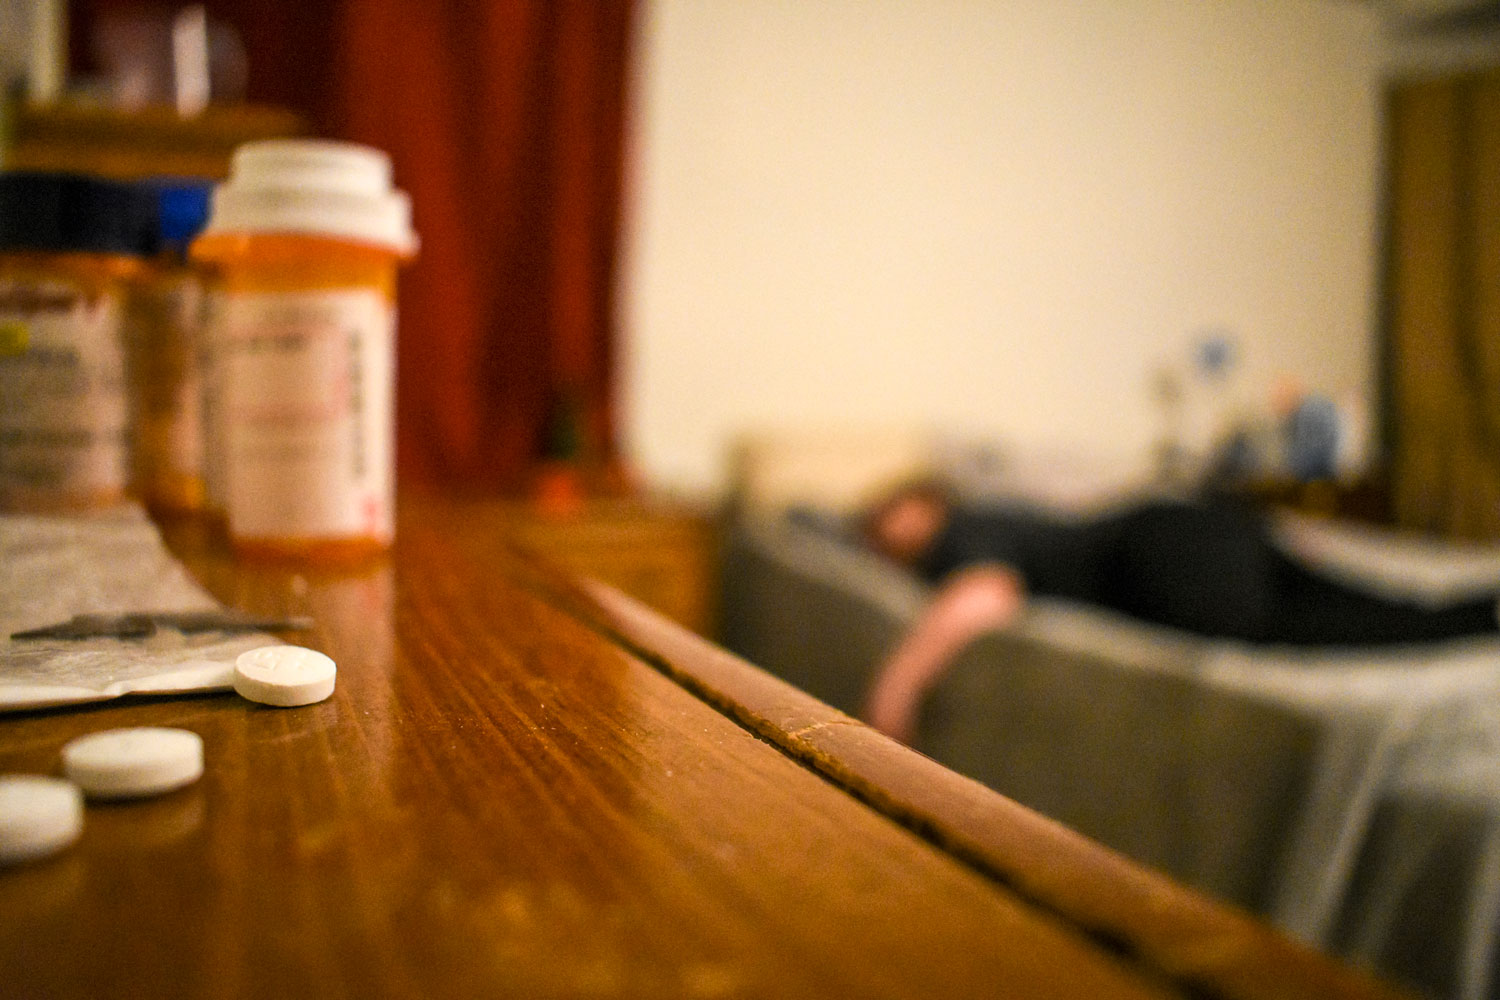 Drugs are among one of the violations that occur on campus. Students have concluded that drugs are not a major problem, but they are becoming normalized. Violations that happen on campus are addressed with fines, community service and more.  (Photo Illustration)